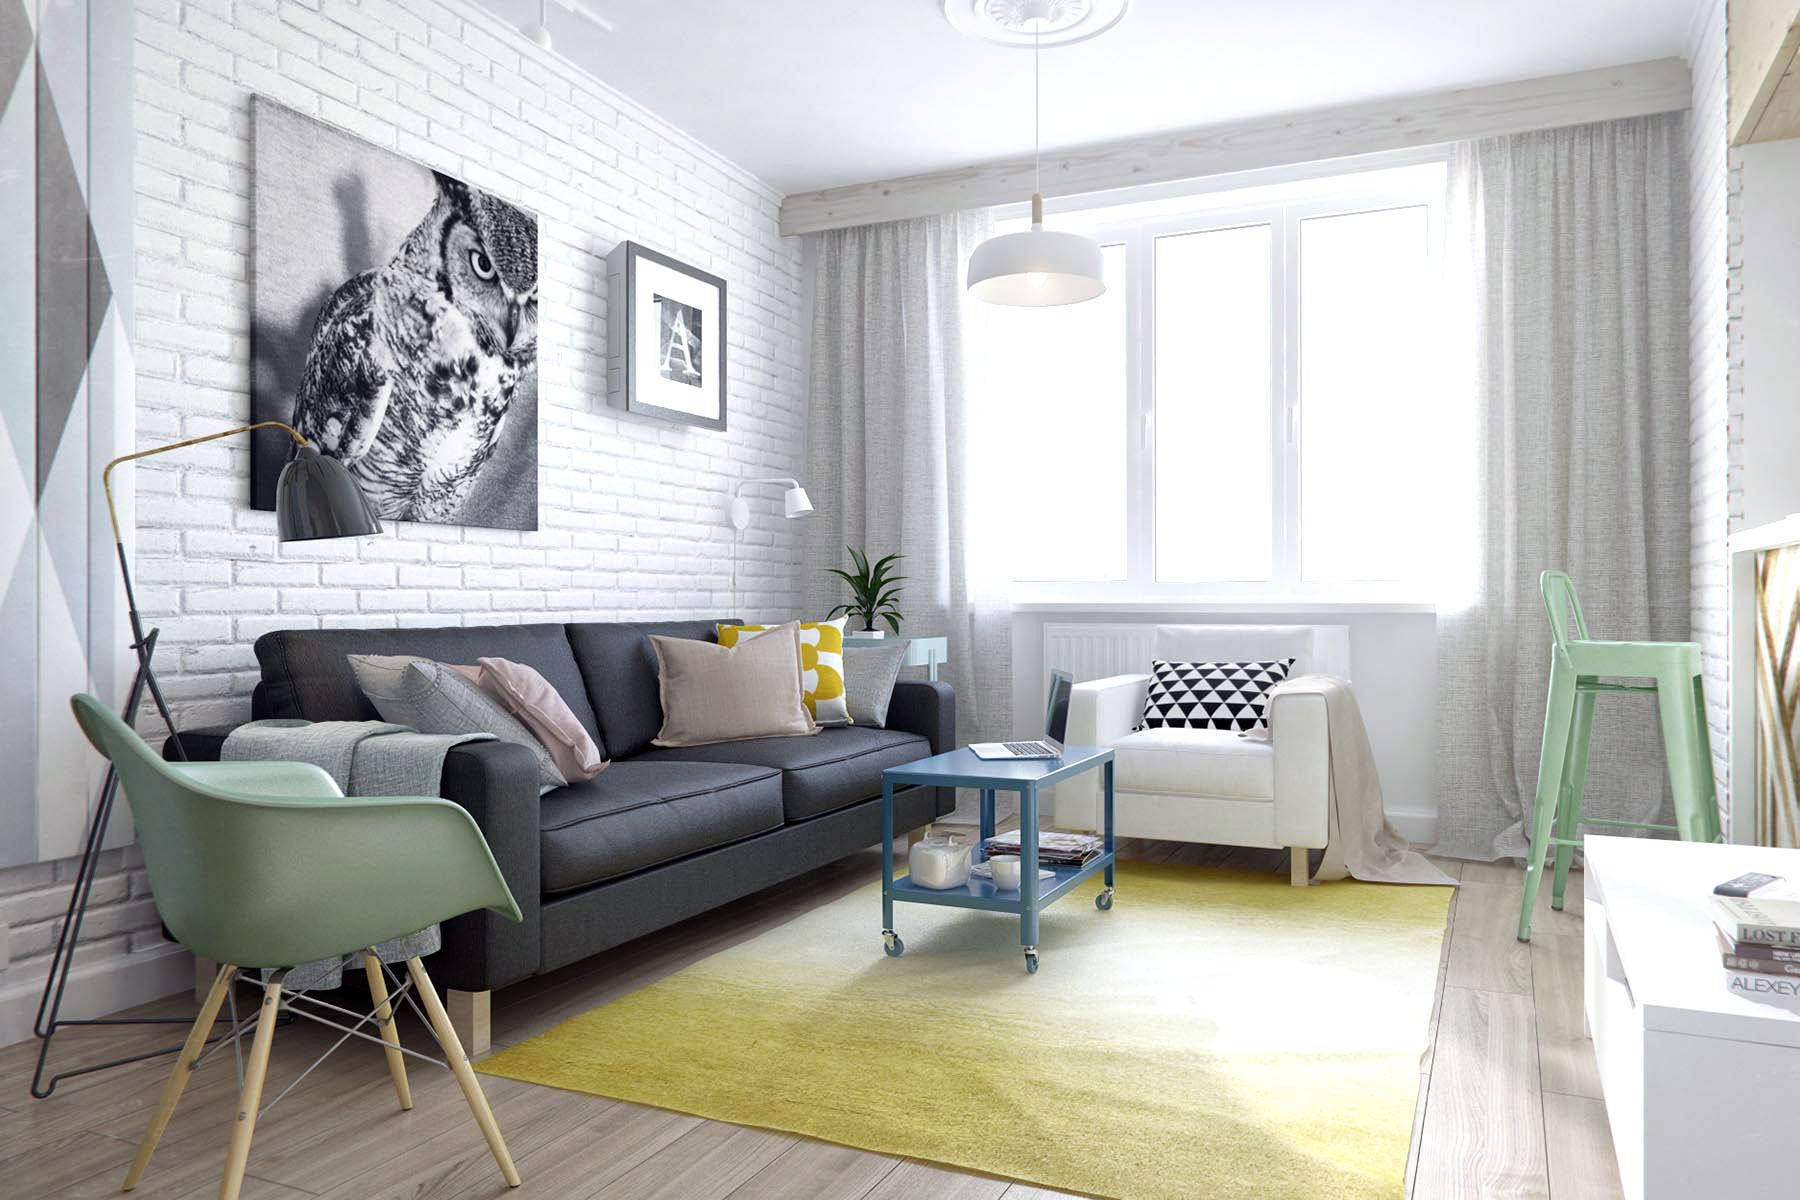 small apartment white walls soft colors living room cococozy 3 cococozy - Living Room Design Help